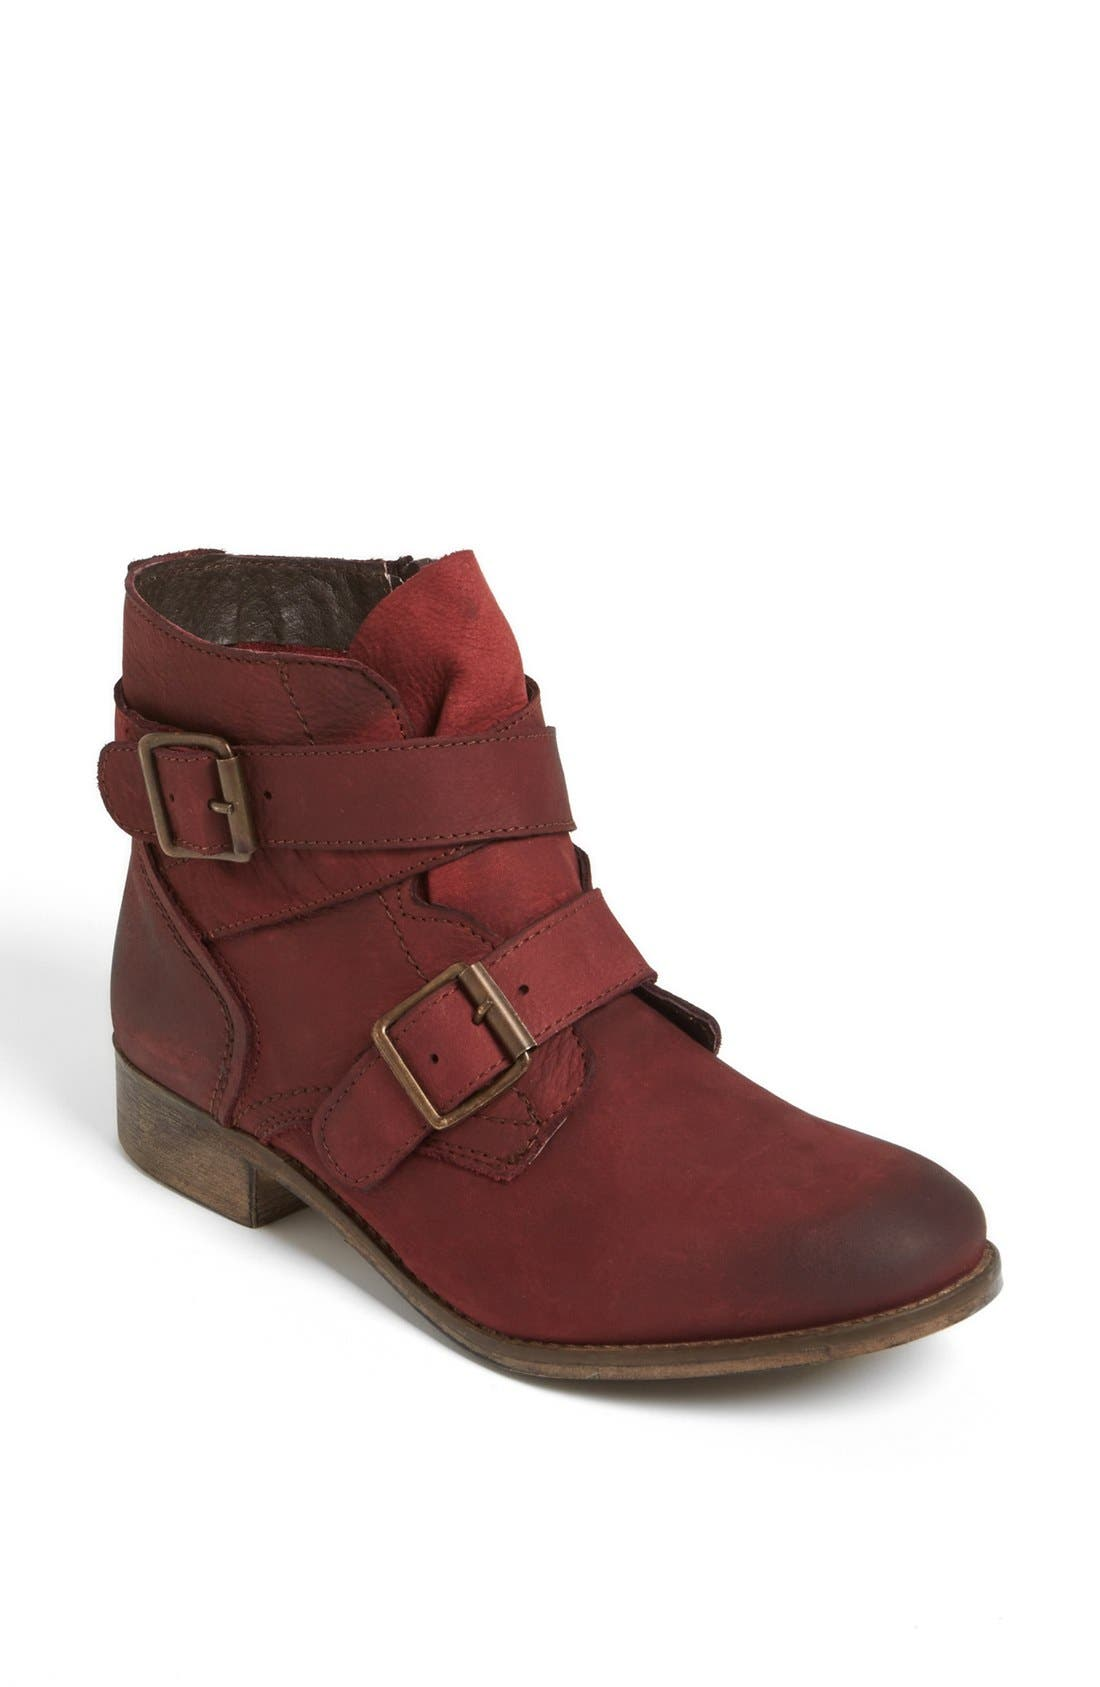 Alternate Image 1 Selected - Steve Madden 'Teritory' Boot